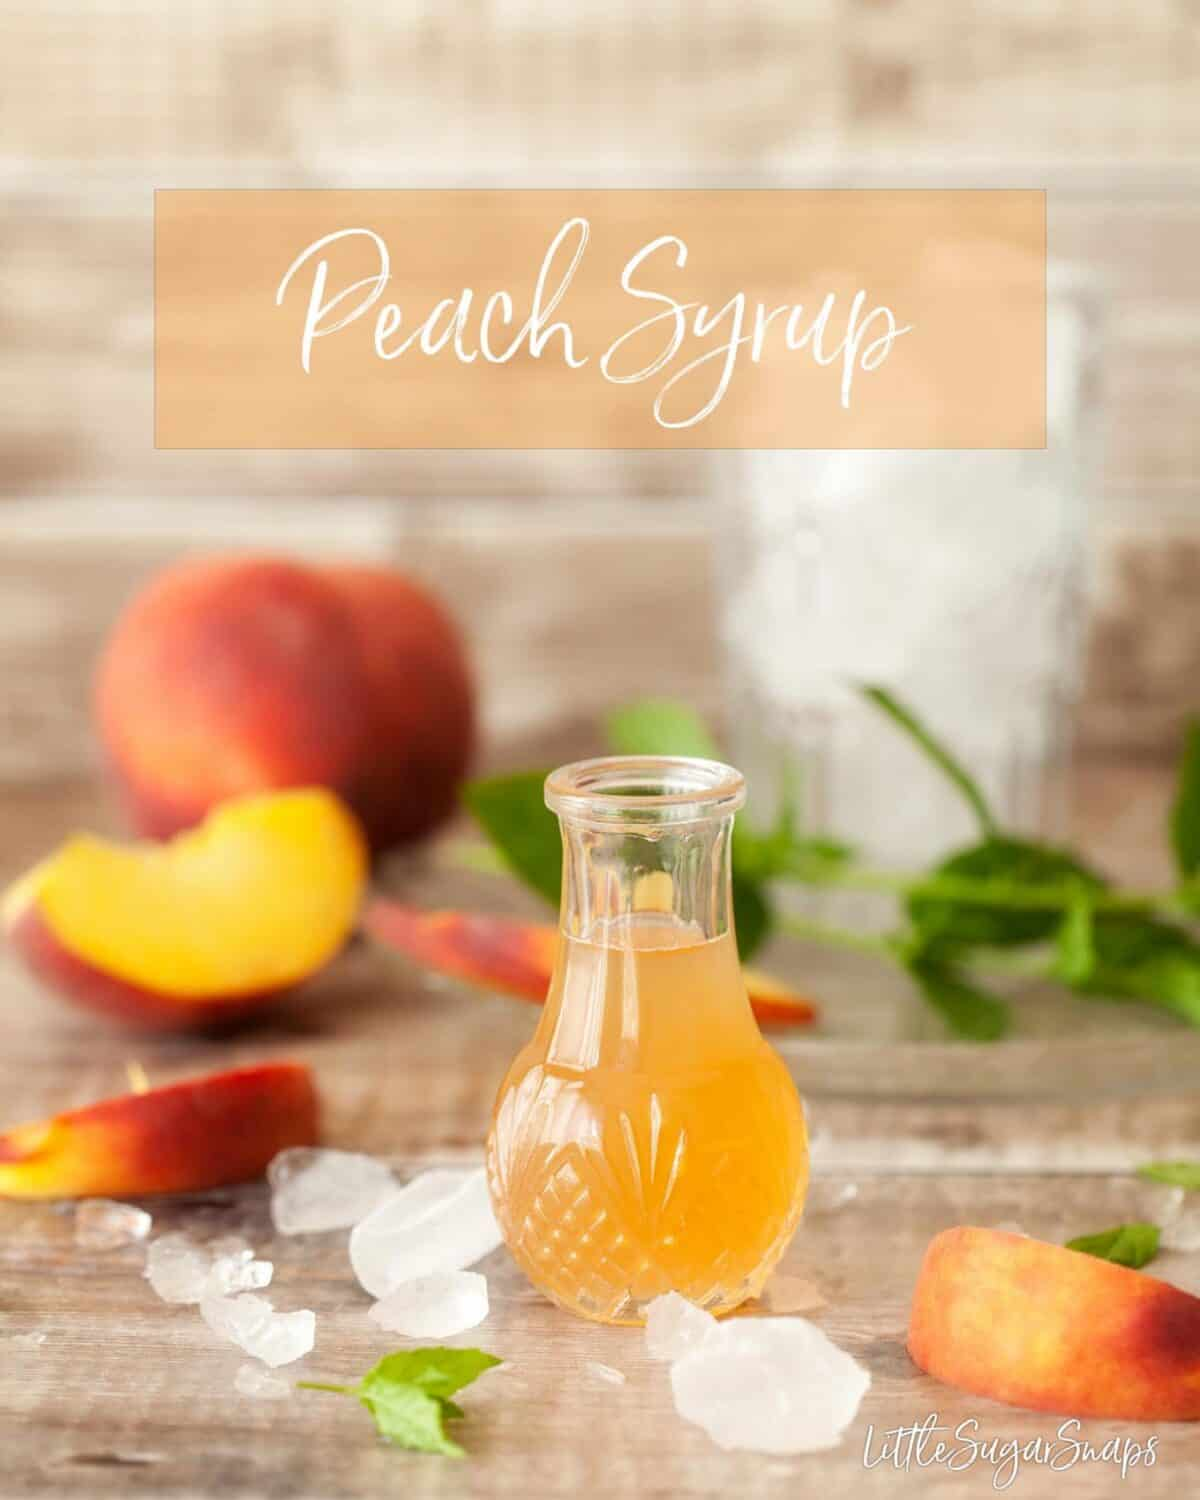 Peach syrup - fresh peaches make this syrup ideal for diluting with still or sparkling water or lemonade or adding to cocktails #peachsyrup #peach #fruitsyrup